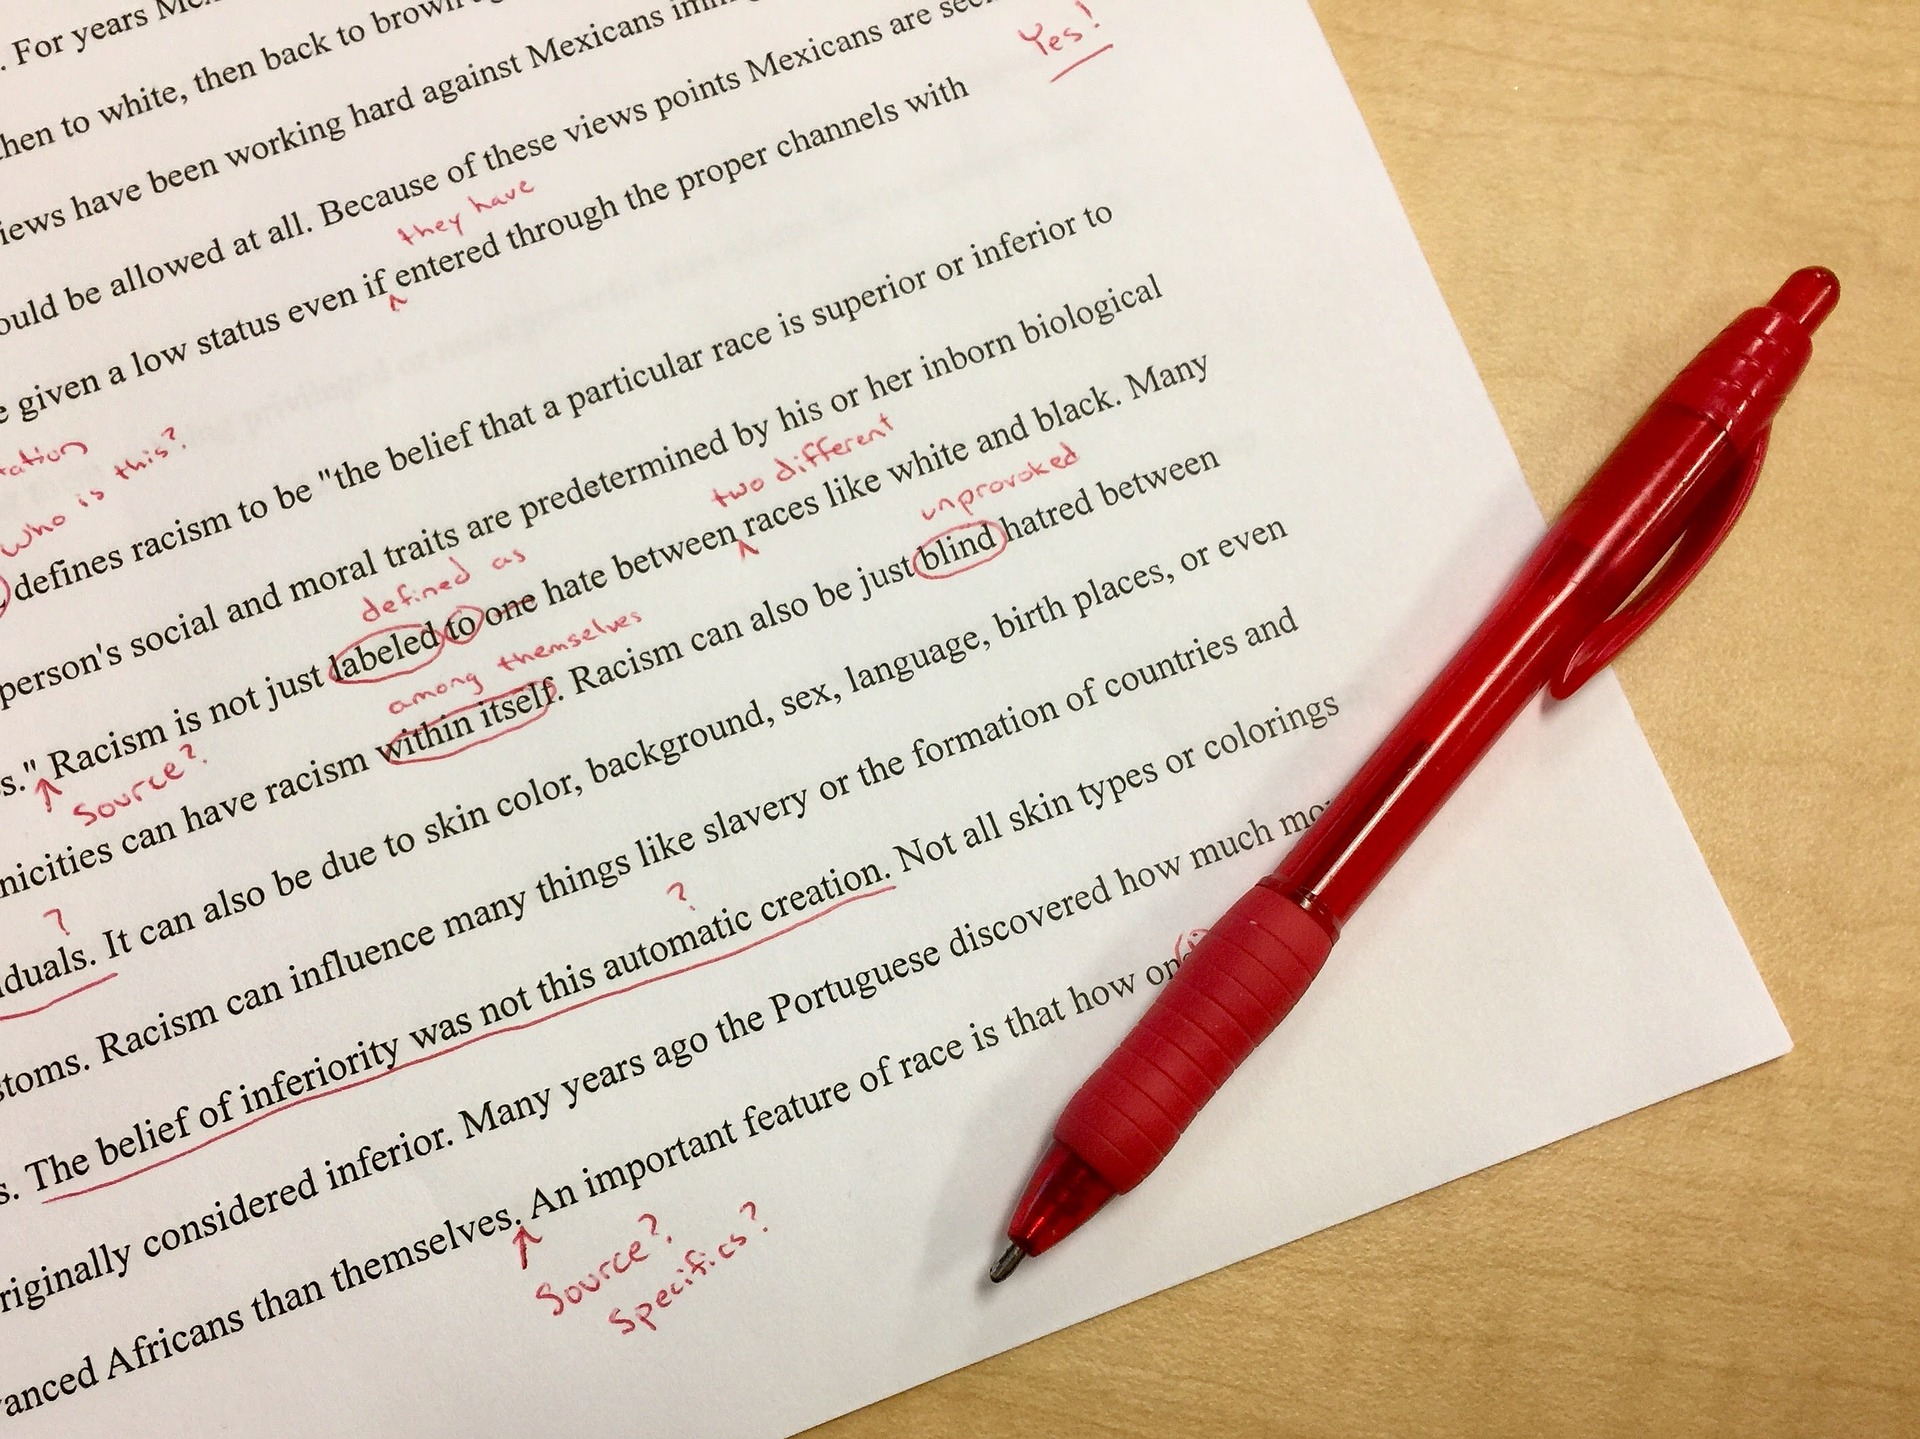 an essay with spelling corrections